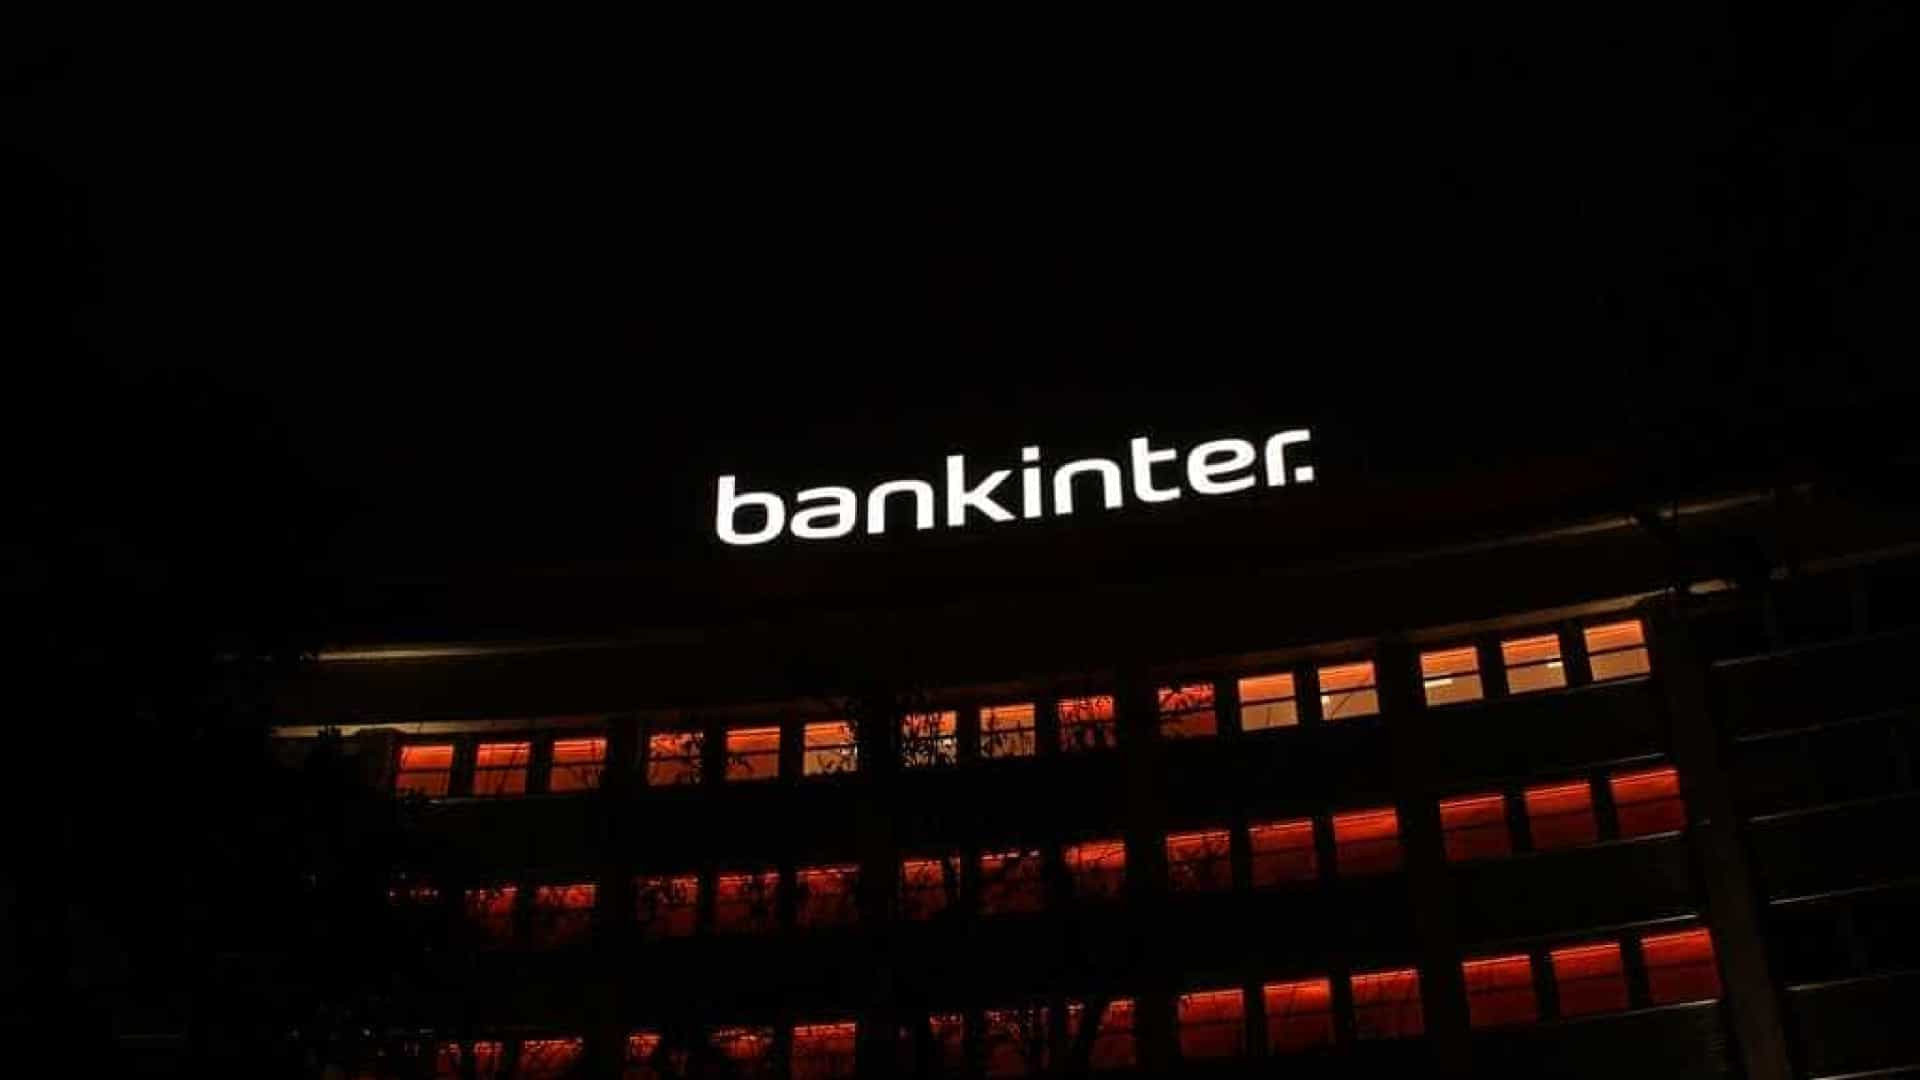 Bankinter vende à Arrow Global Limited créditos tóxicos em Portugal